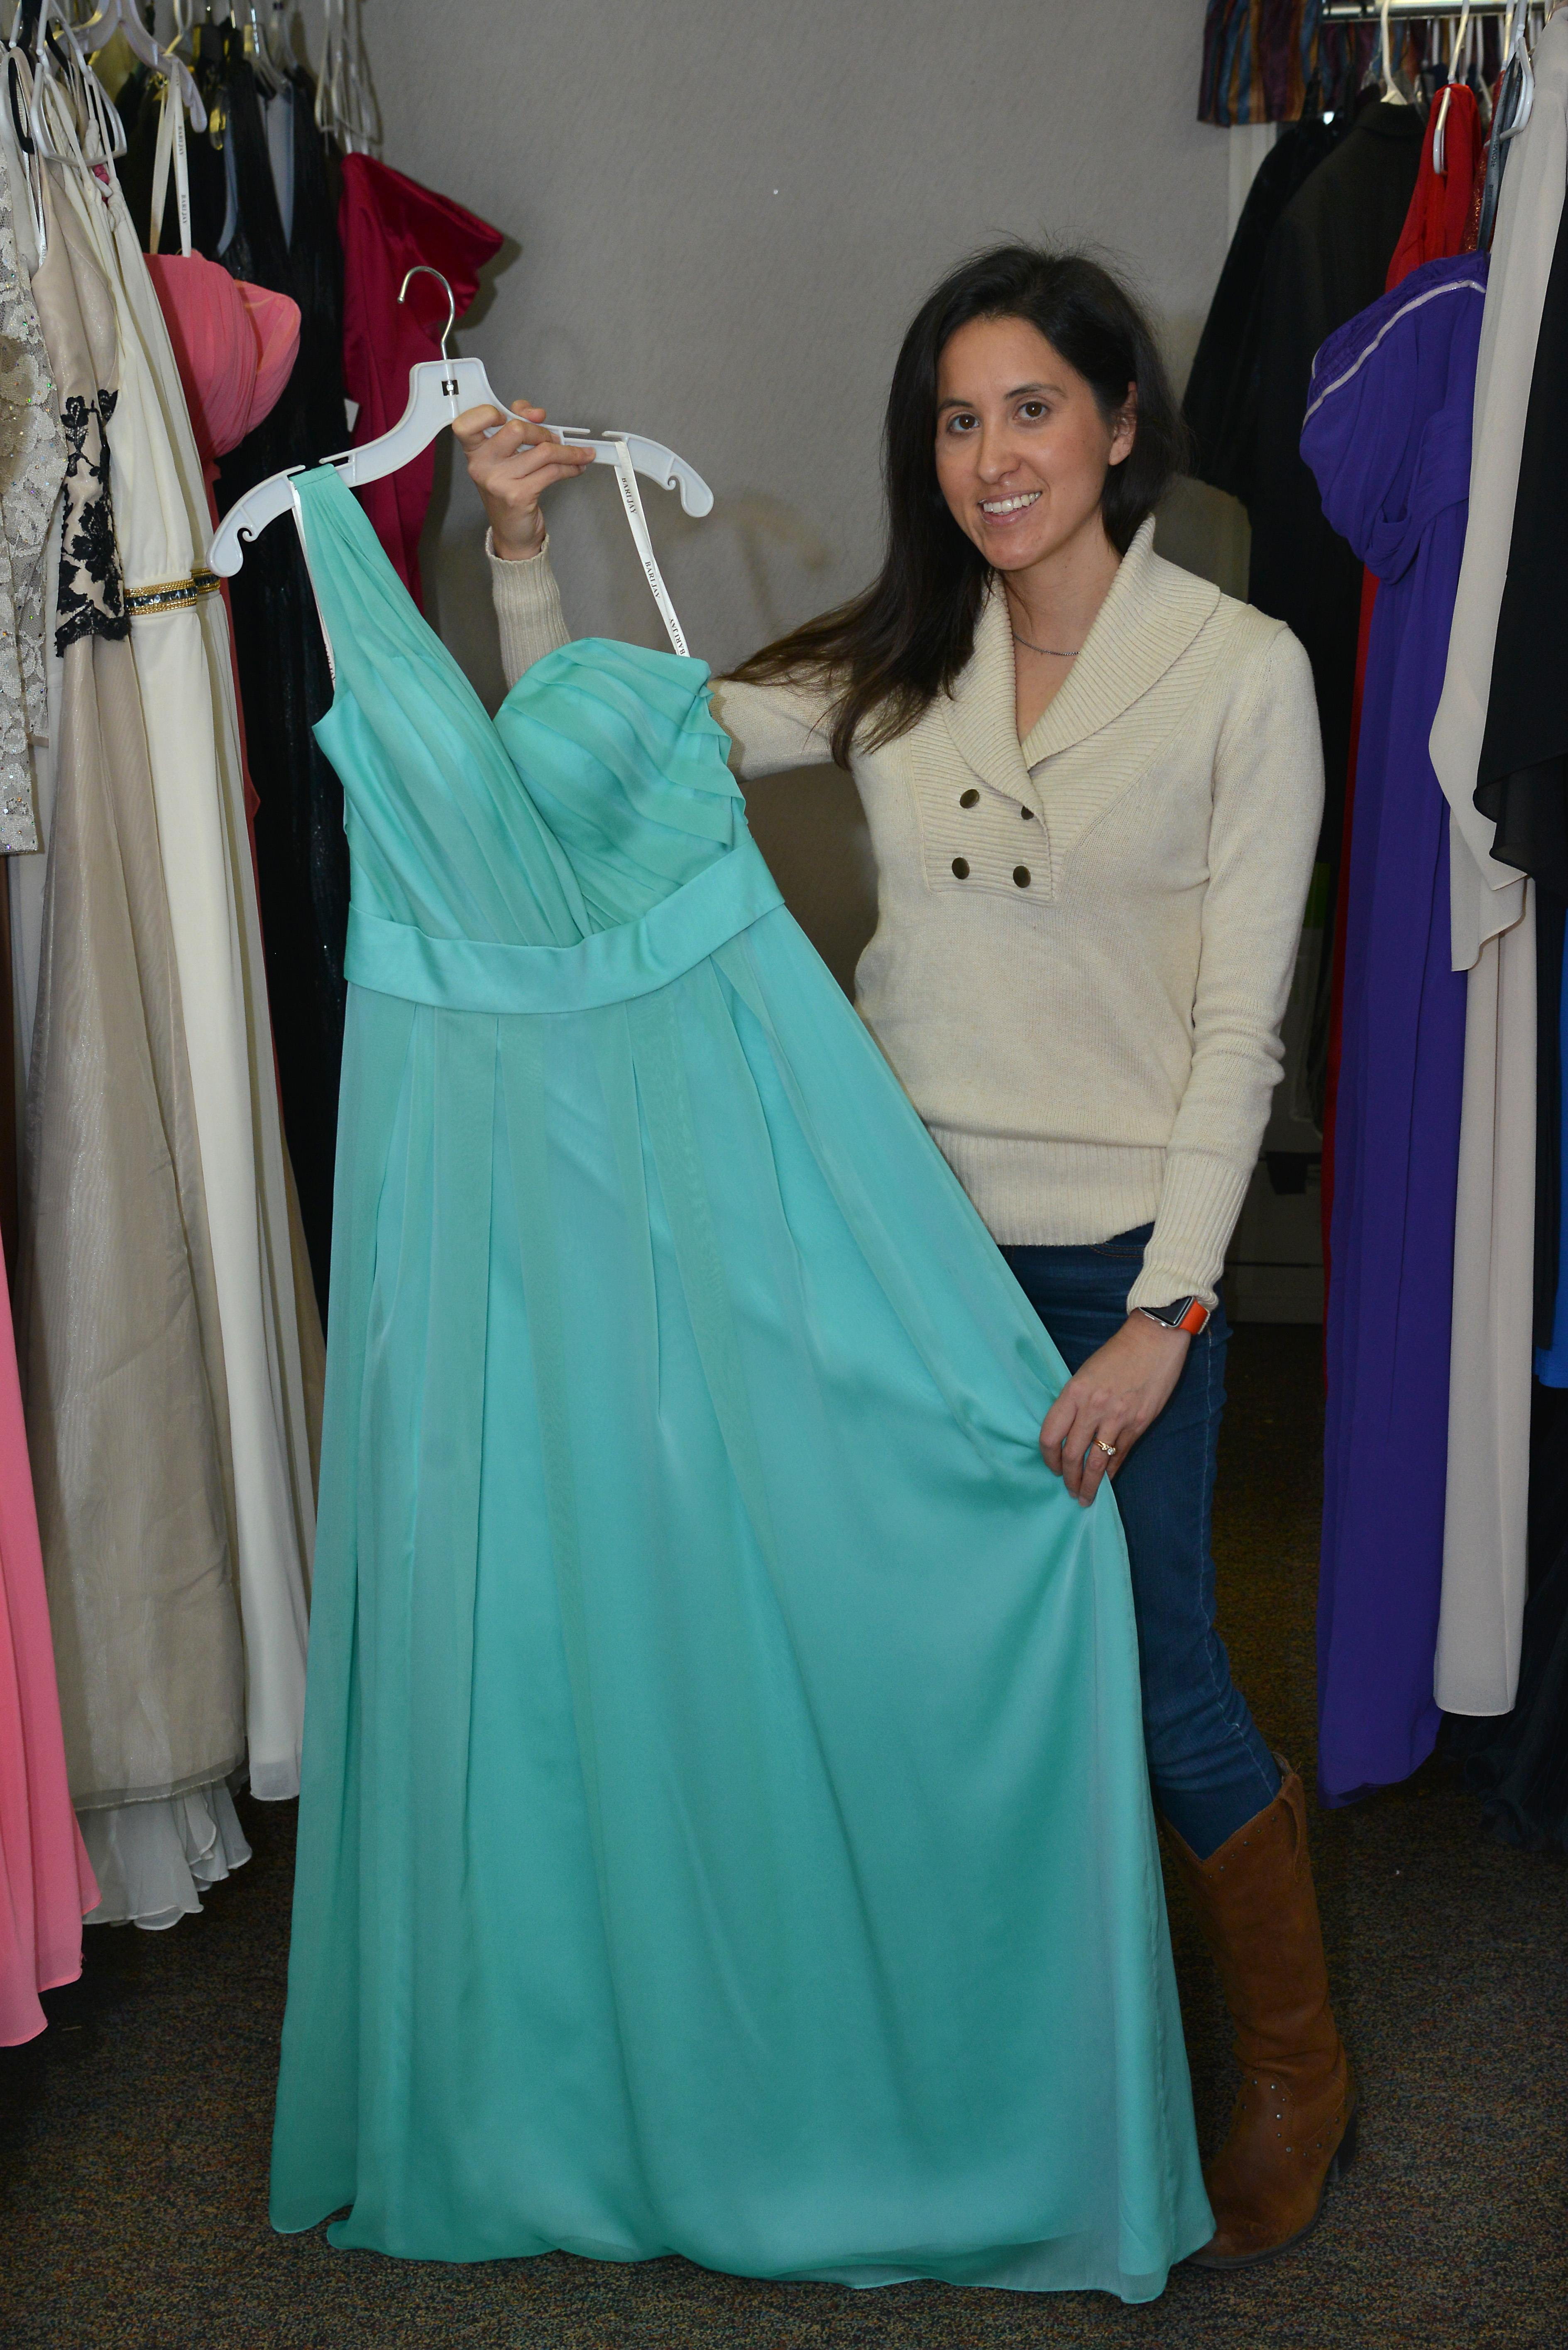 Spouses help military families one dress at a time > Joint Base ...